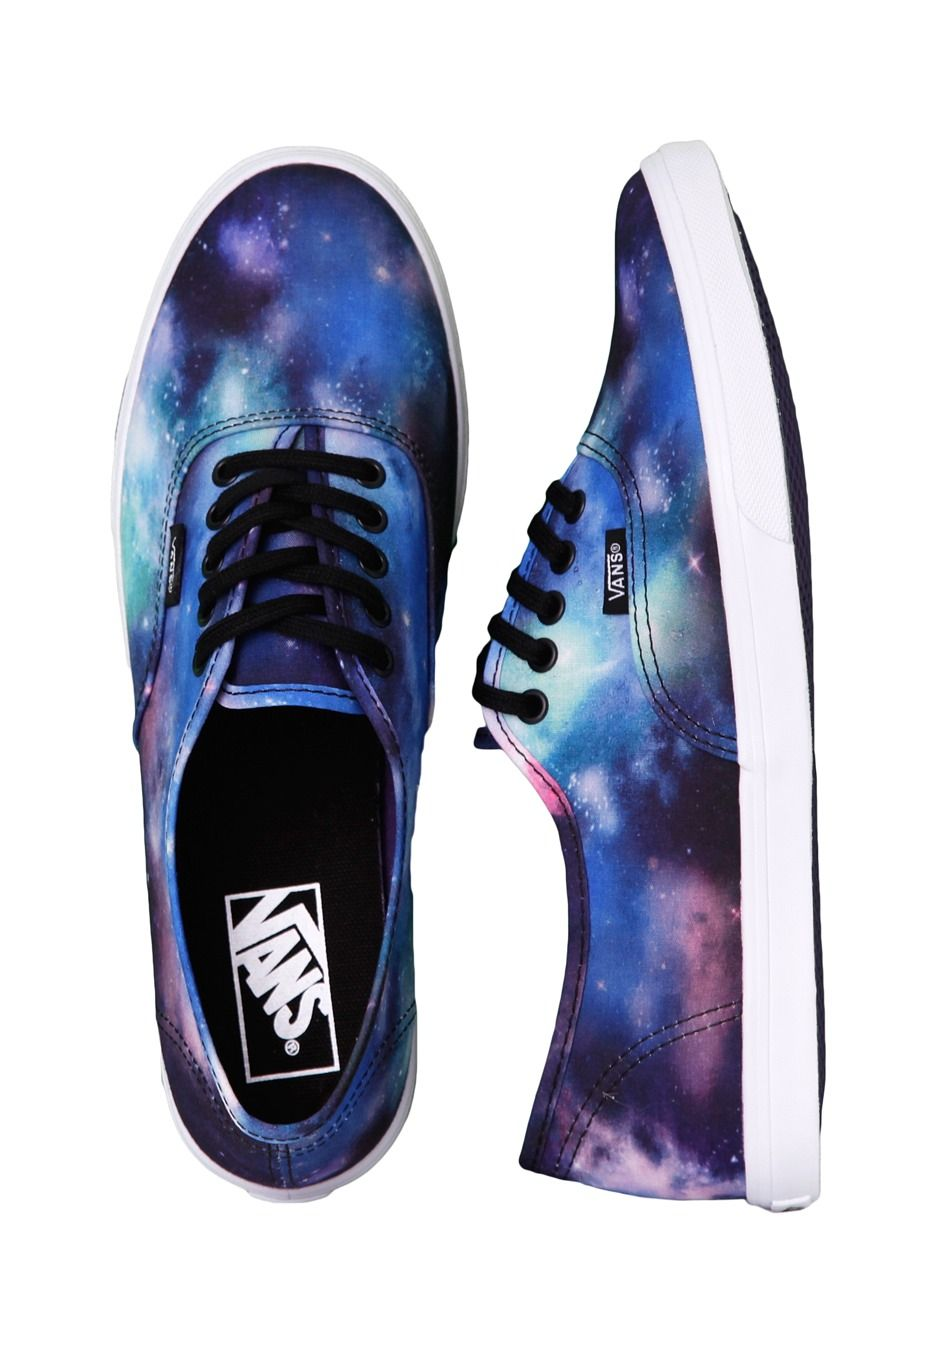 Vans - Authentic Lo Pro Cosmic Galaxy Black True White - Girl Shoes My new  favorite shoes!!!  3 0e3ce8edf